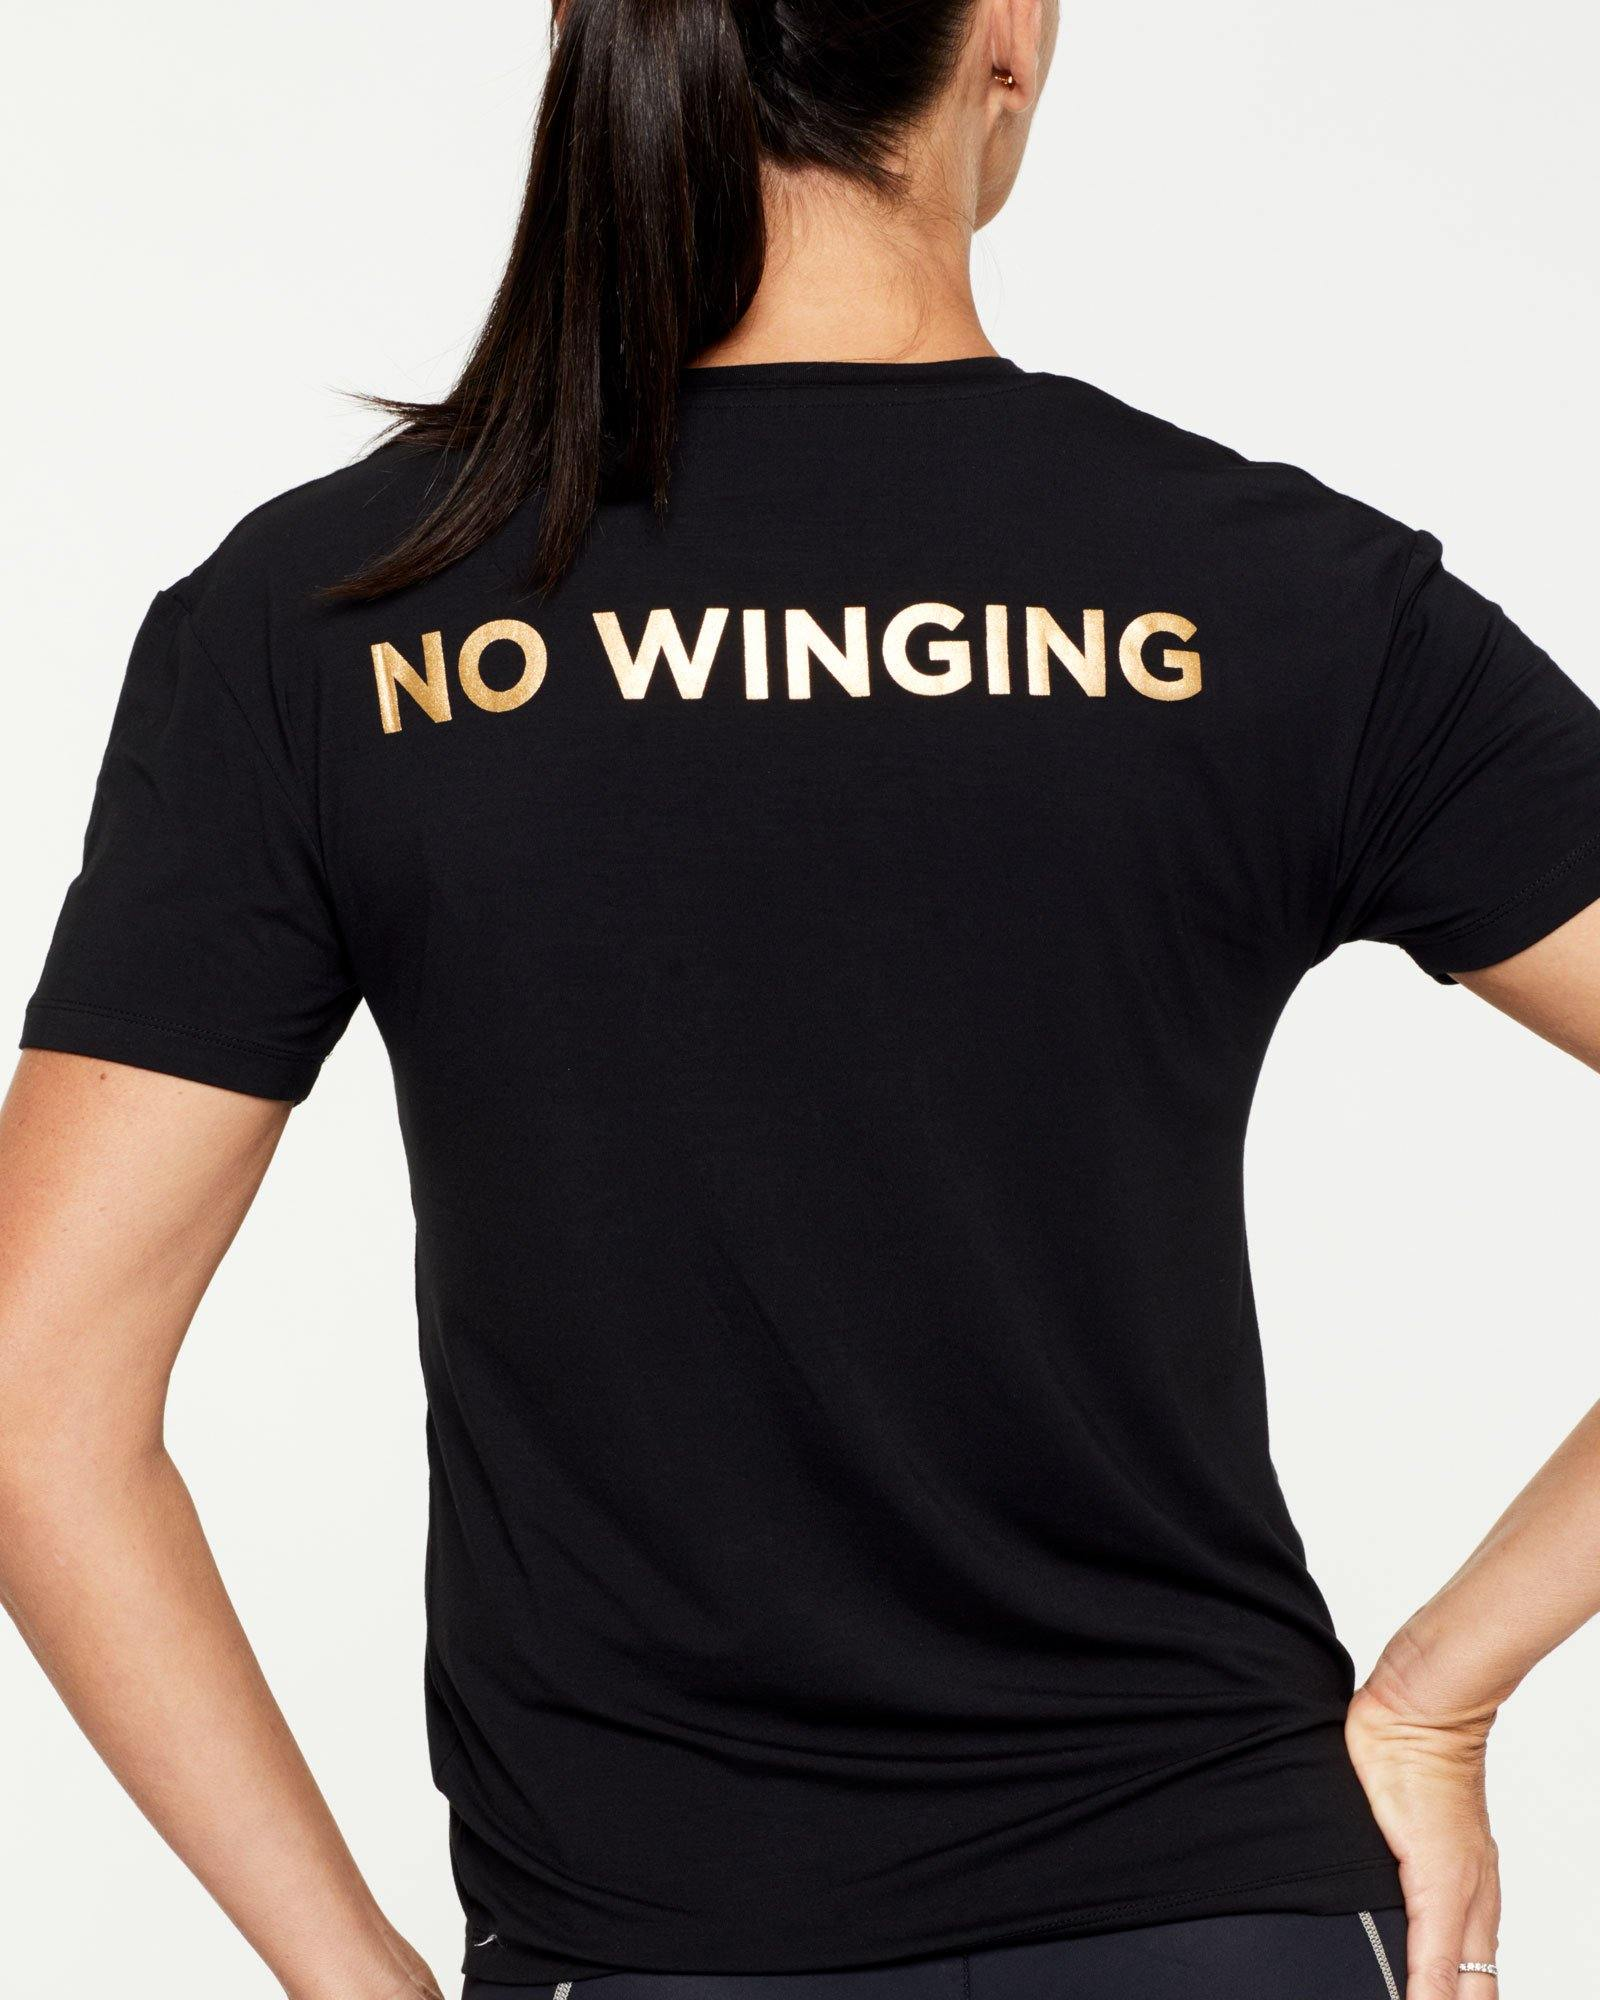 Warrior SCAPULAE T-SHIRT, BLACK WITH METALLIC GOLD MESSAGING, WORN WITH VASTUS LEGGING, BACK VIEW